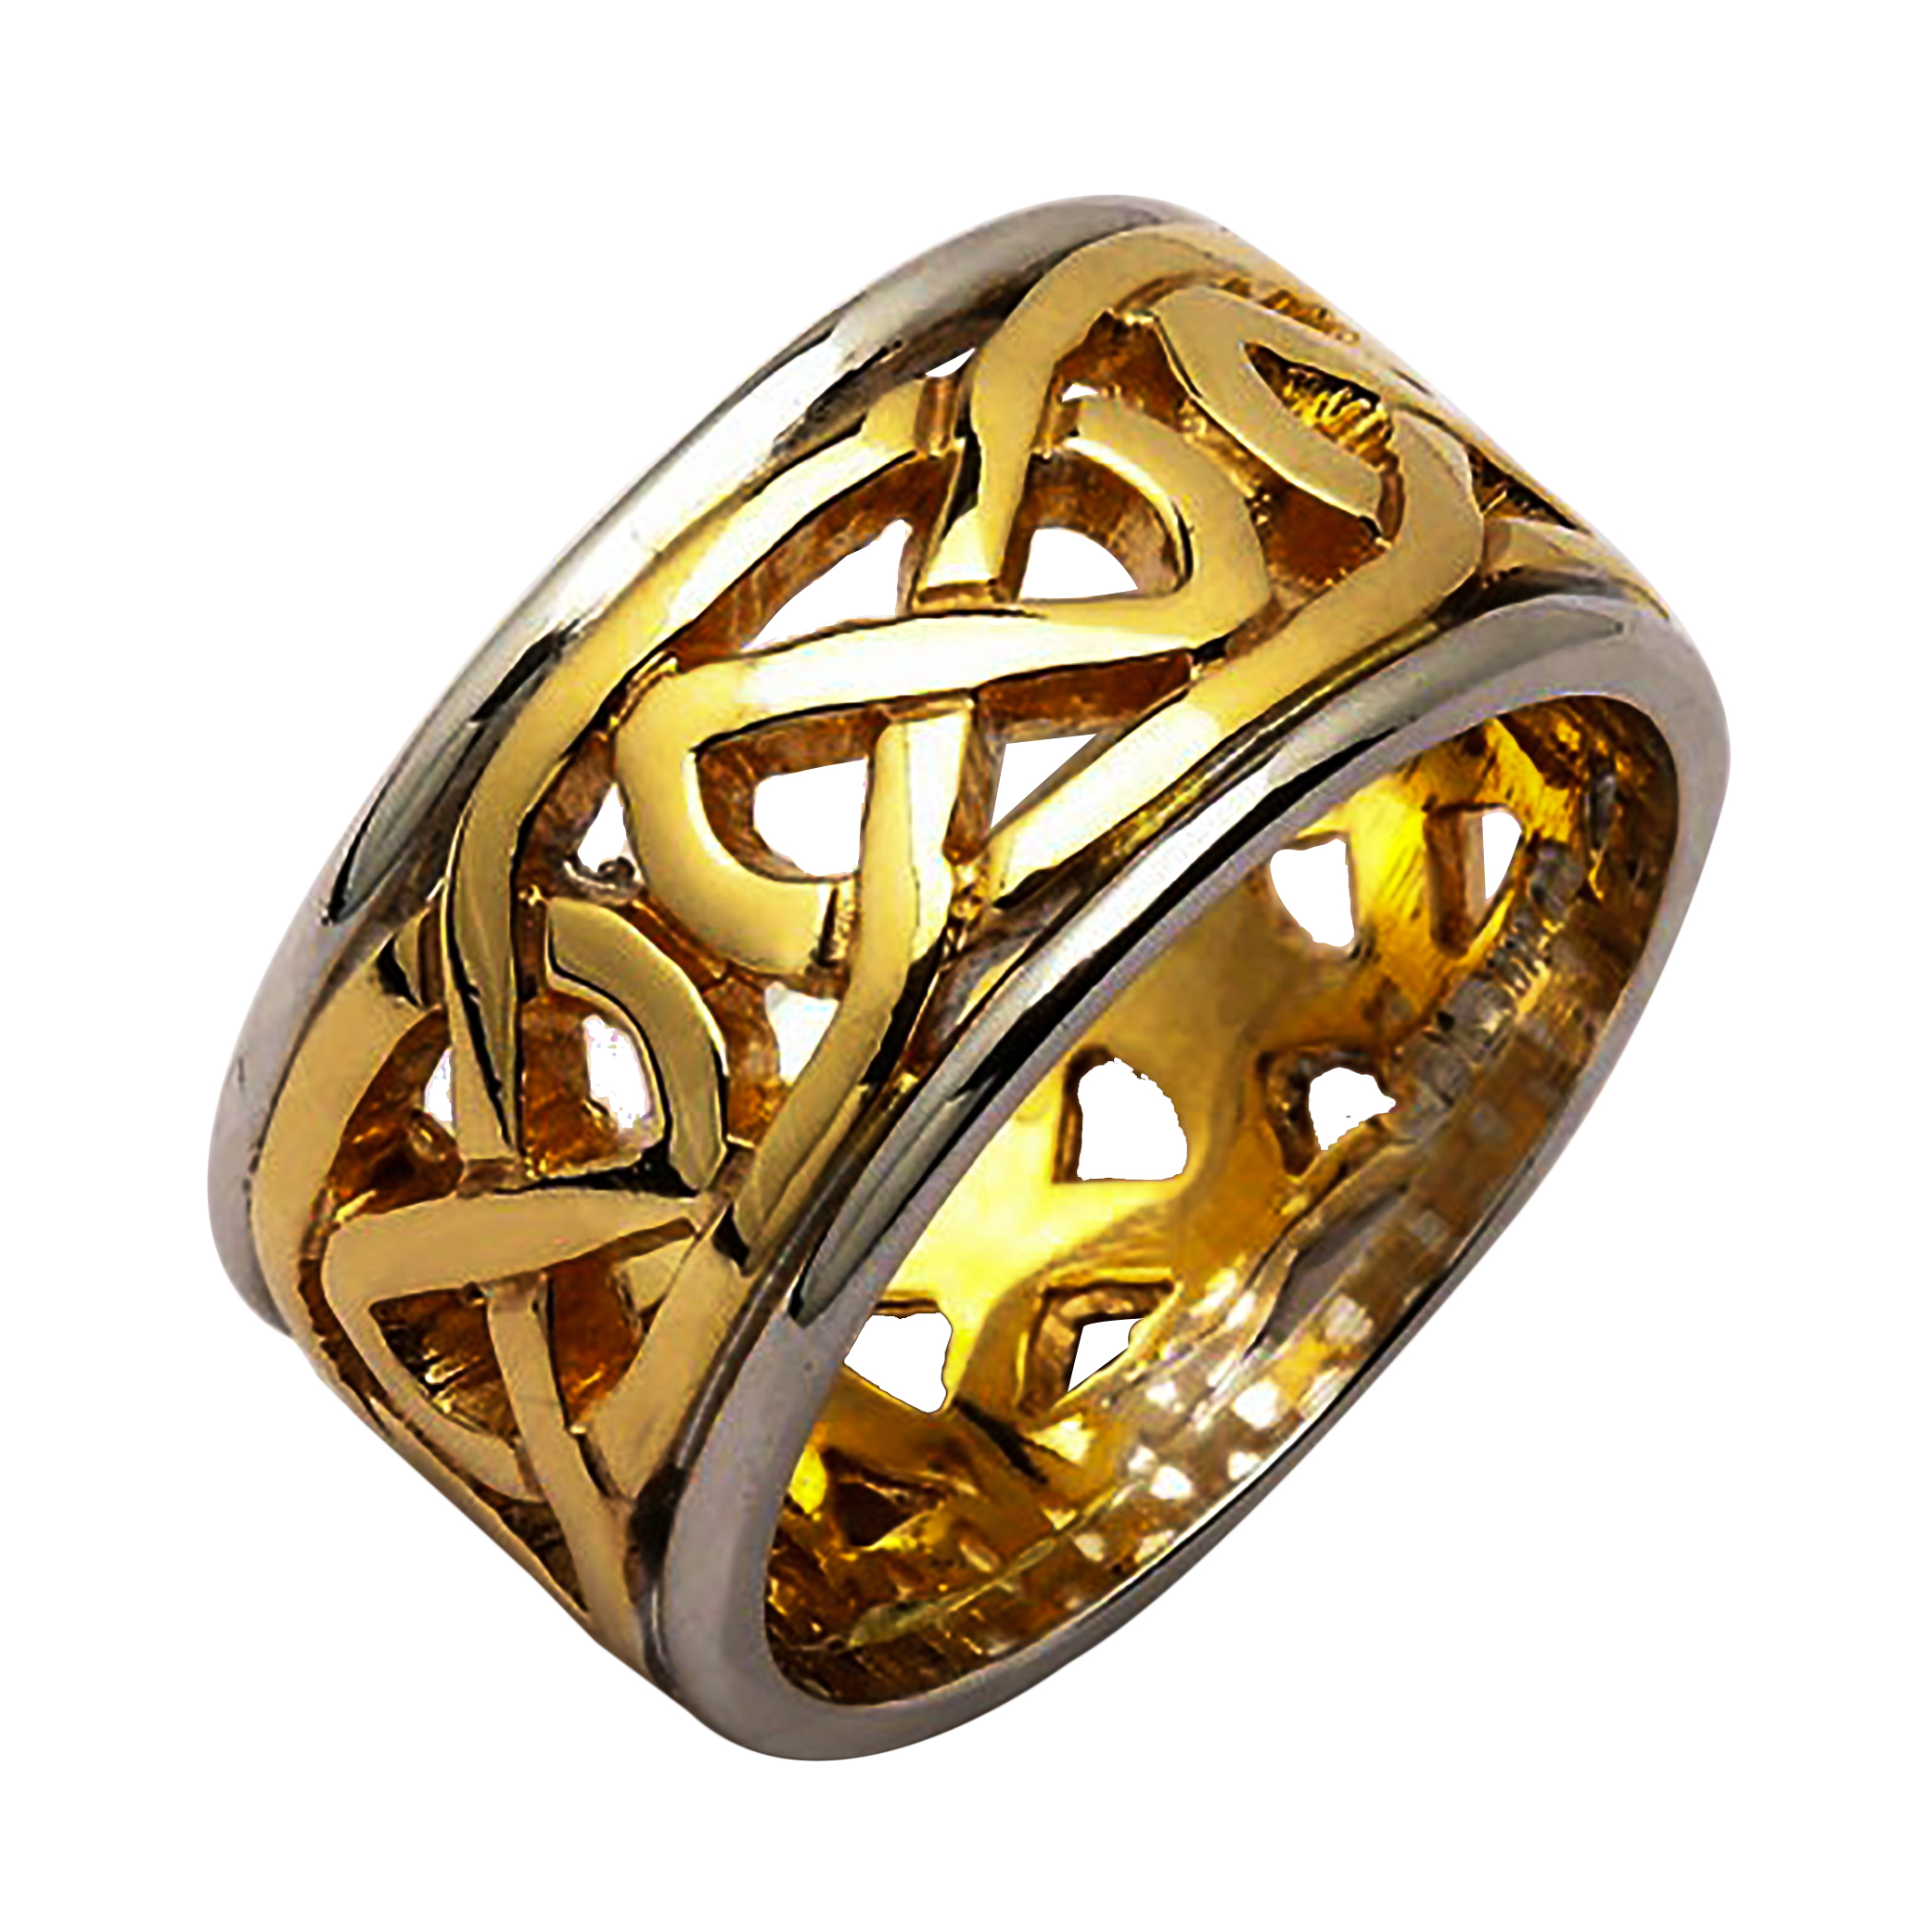 irish two tone wedding ring celtic knots 14 karat or 18 karat gold